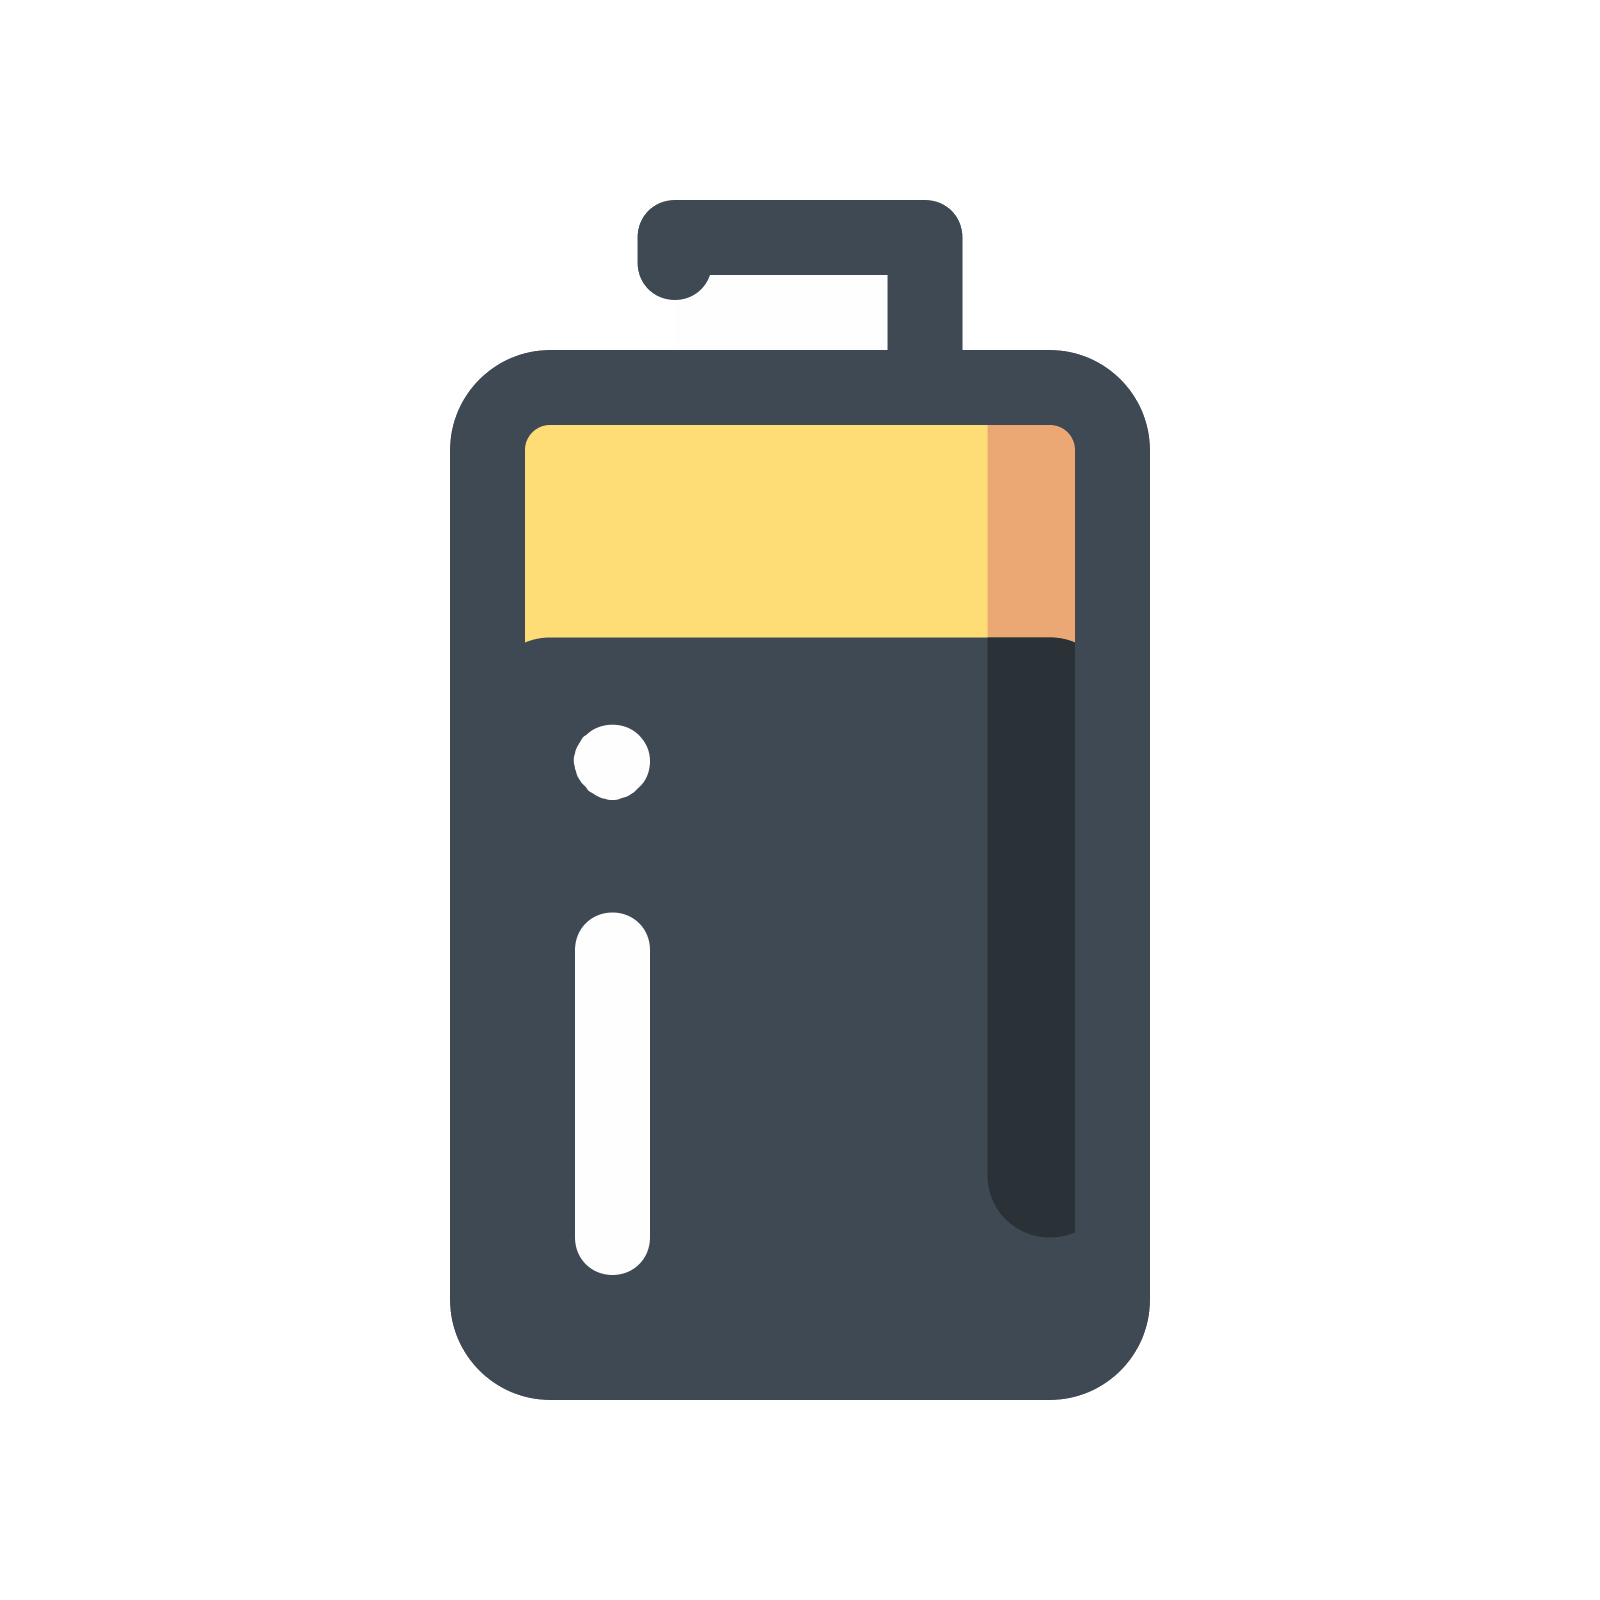 Battery icon png. Free download and vector